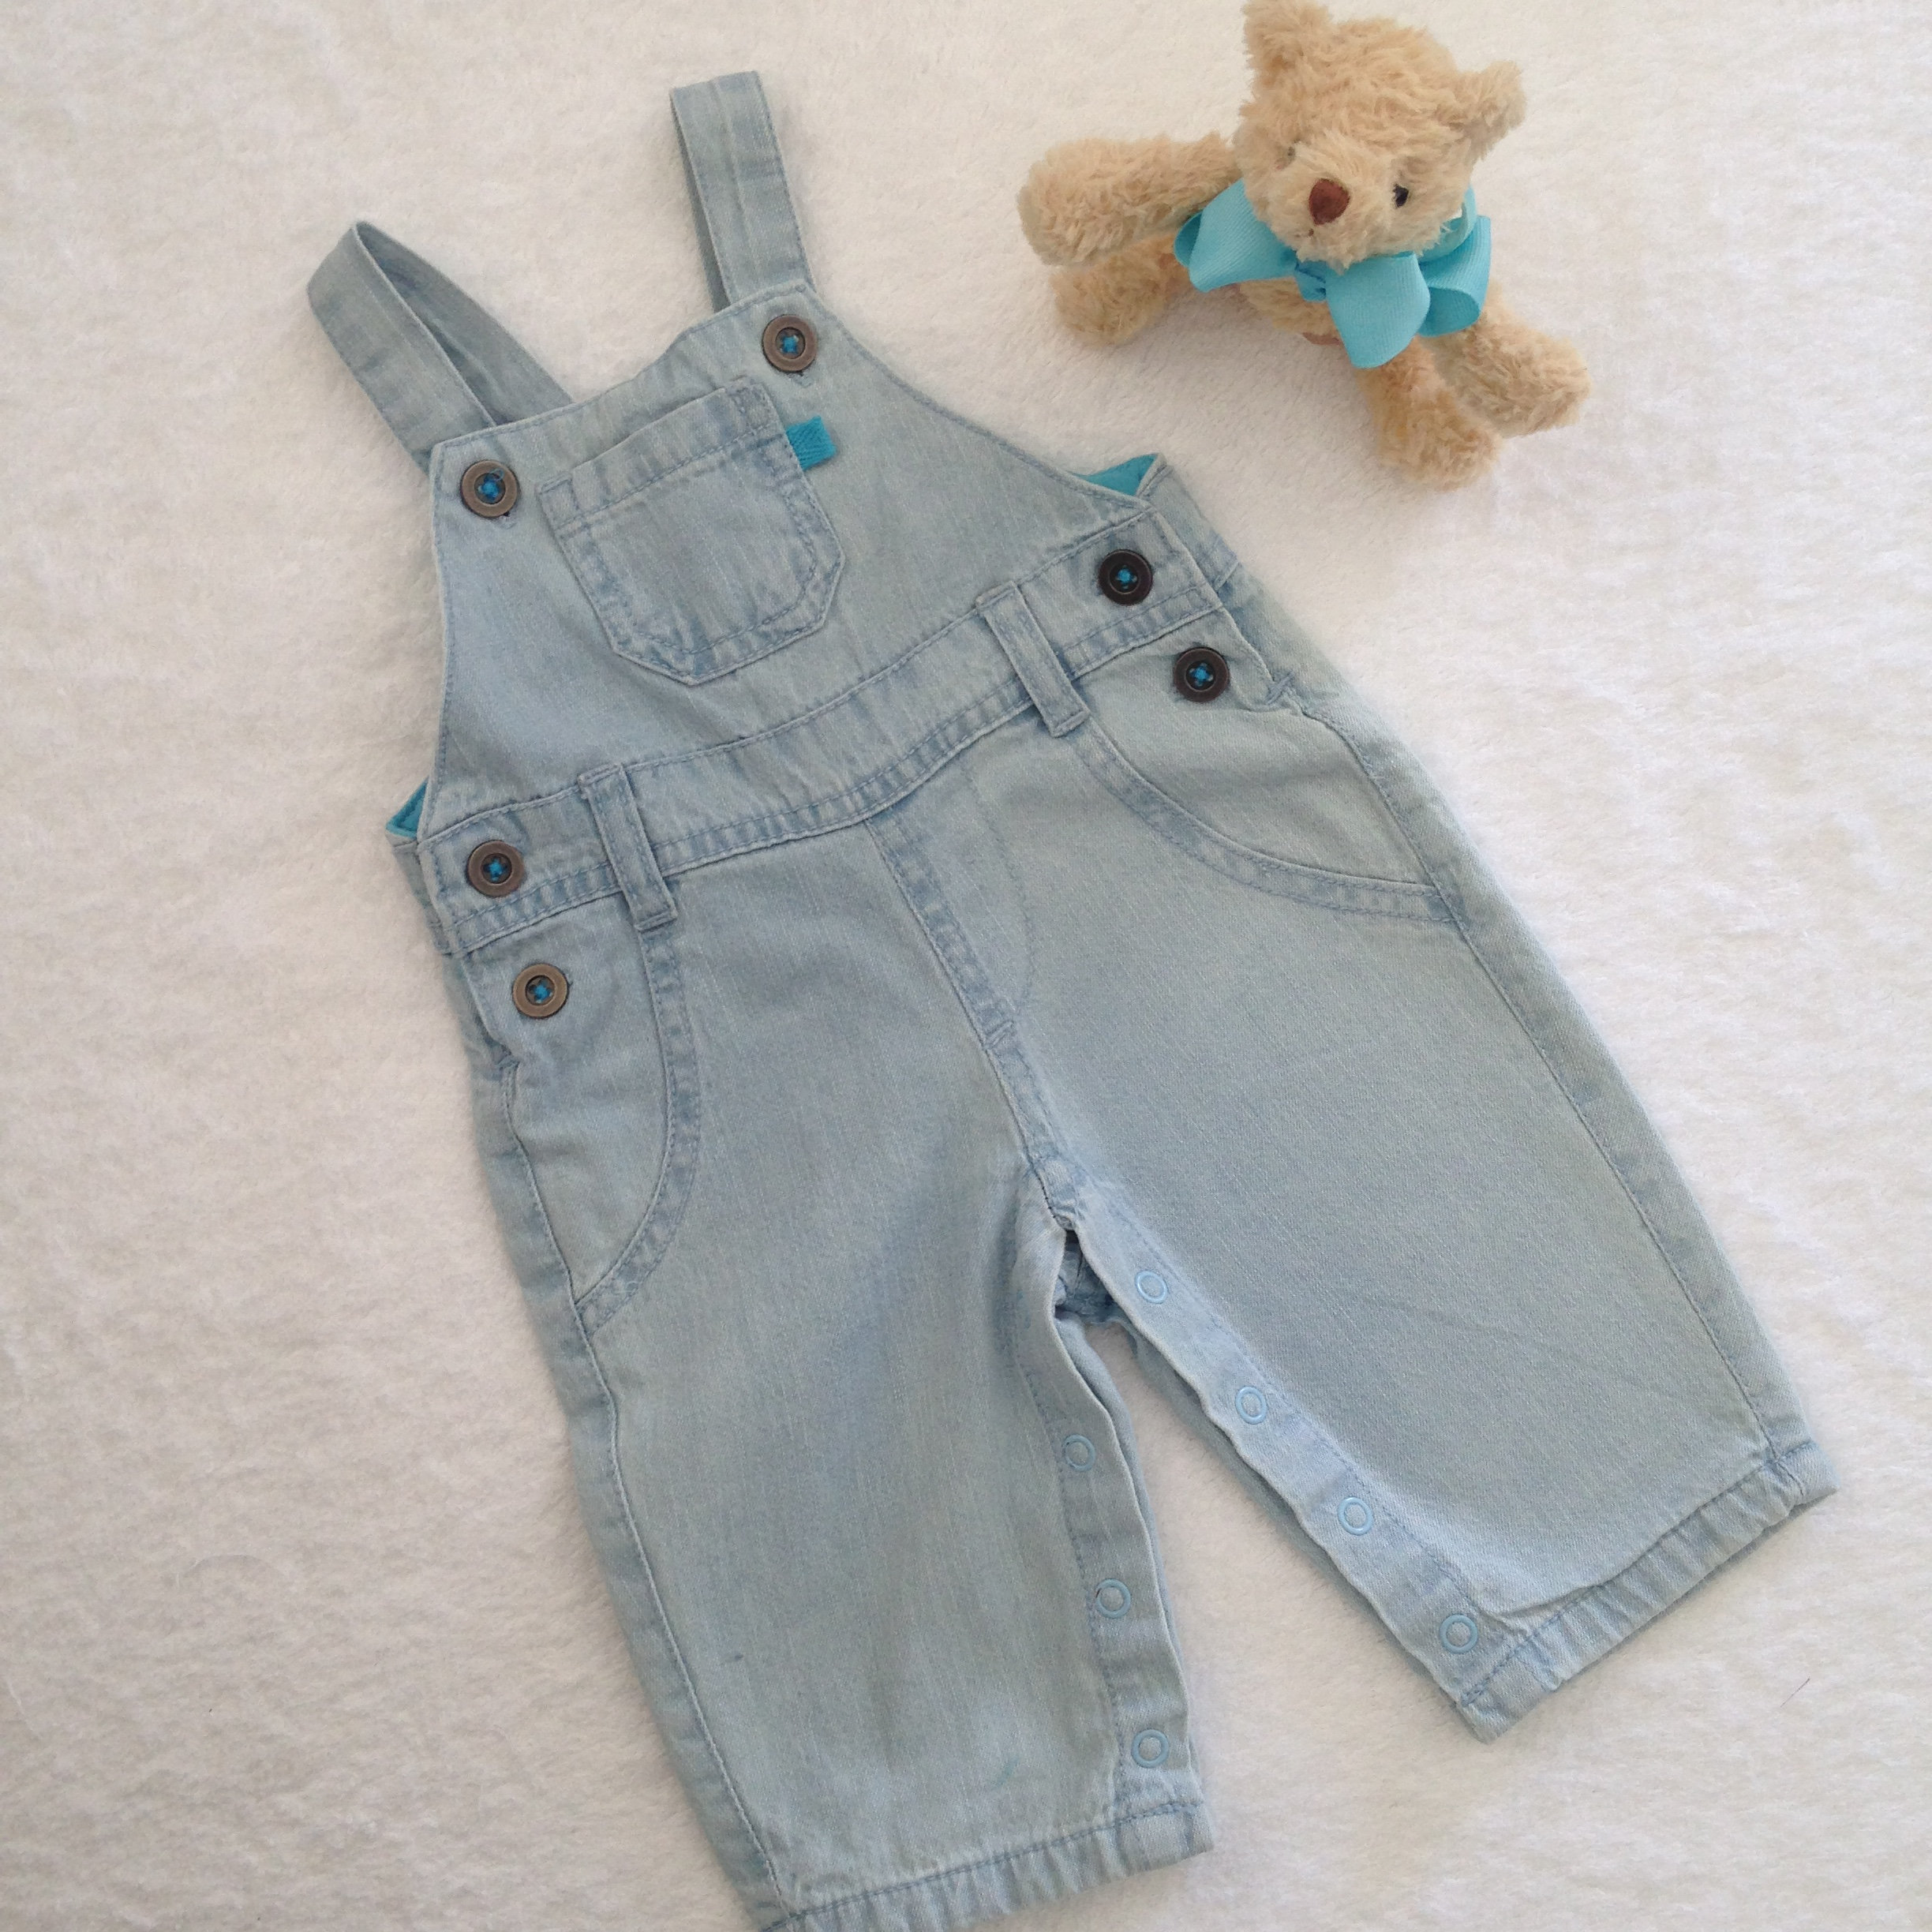 a9056d8a6 Baby Berry Denim Overalls - Baby Boy's Size 000 | Baby B Jazz